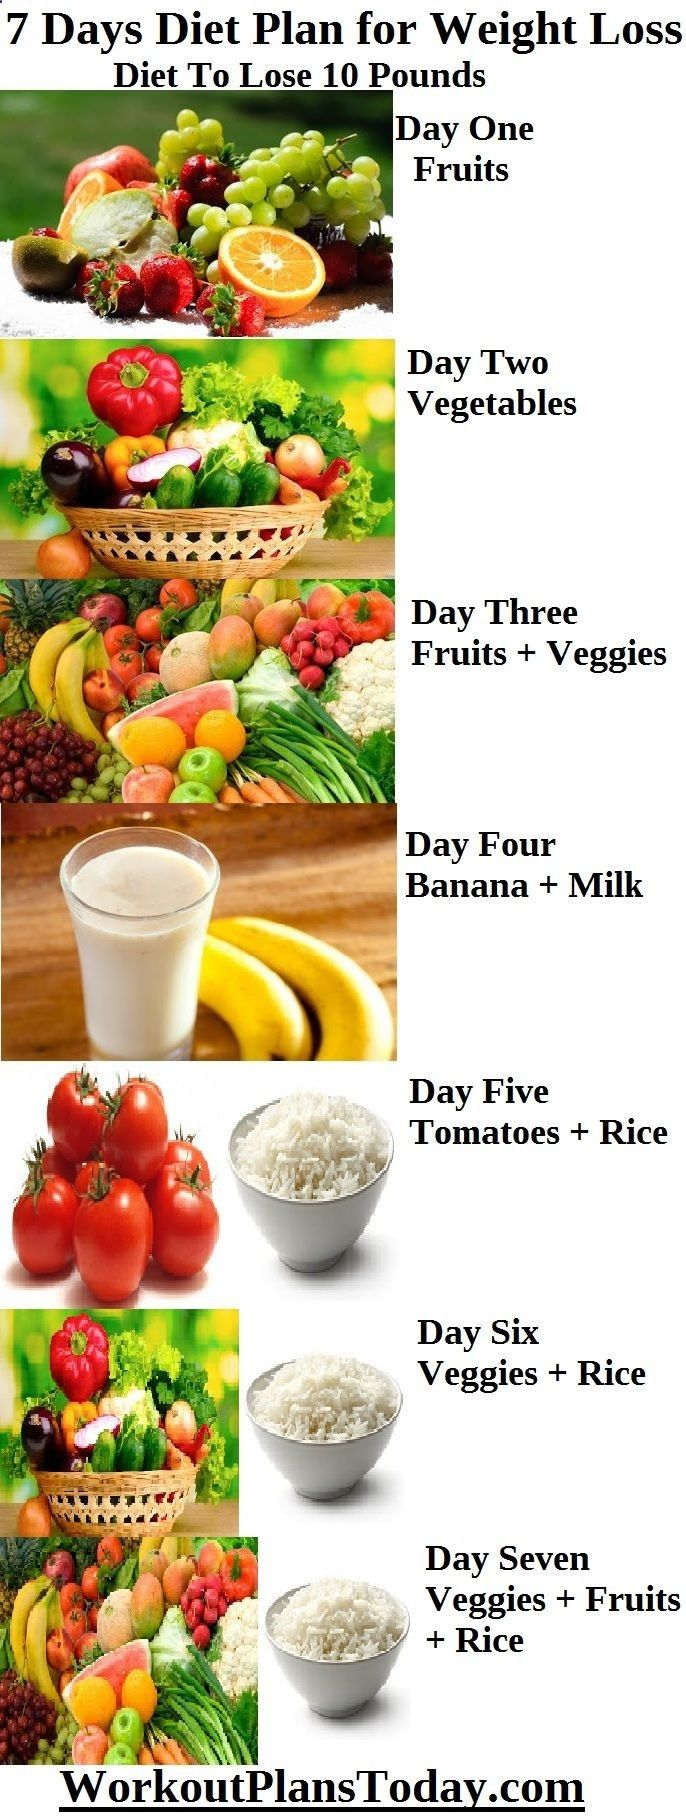 7 days diet plan for weight loss to lose 10 pounds day